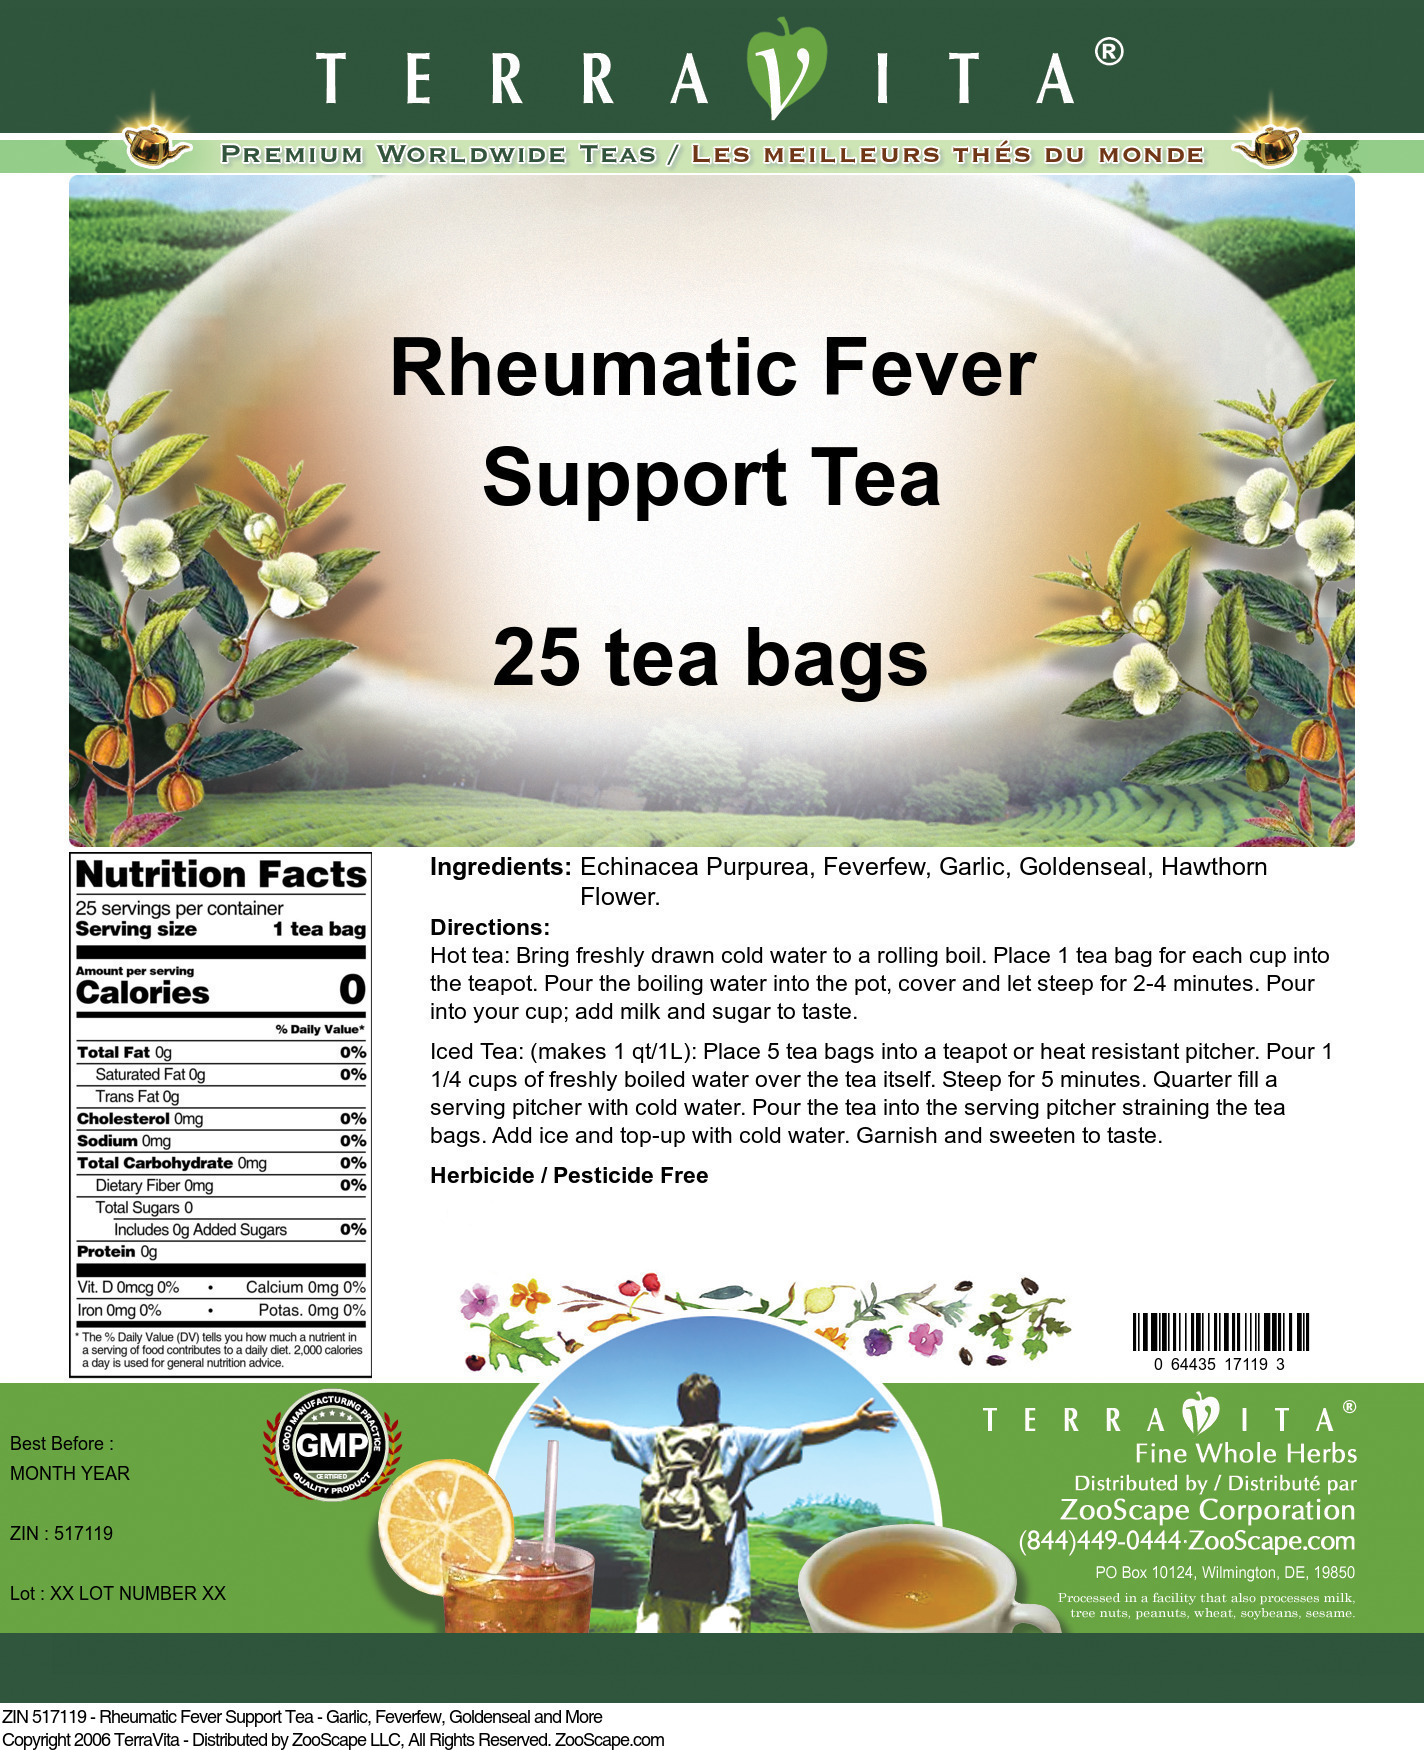 Rheumatic Fever Support Tea - Garlic, Feverfew, Goldenseal and More